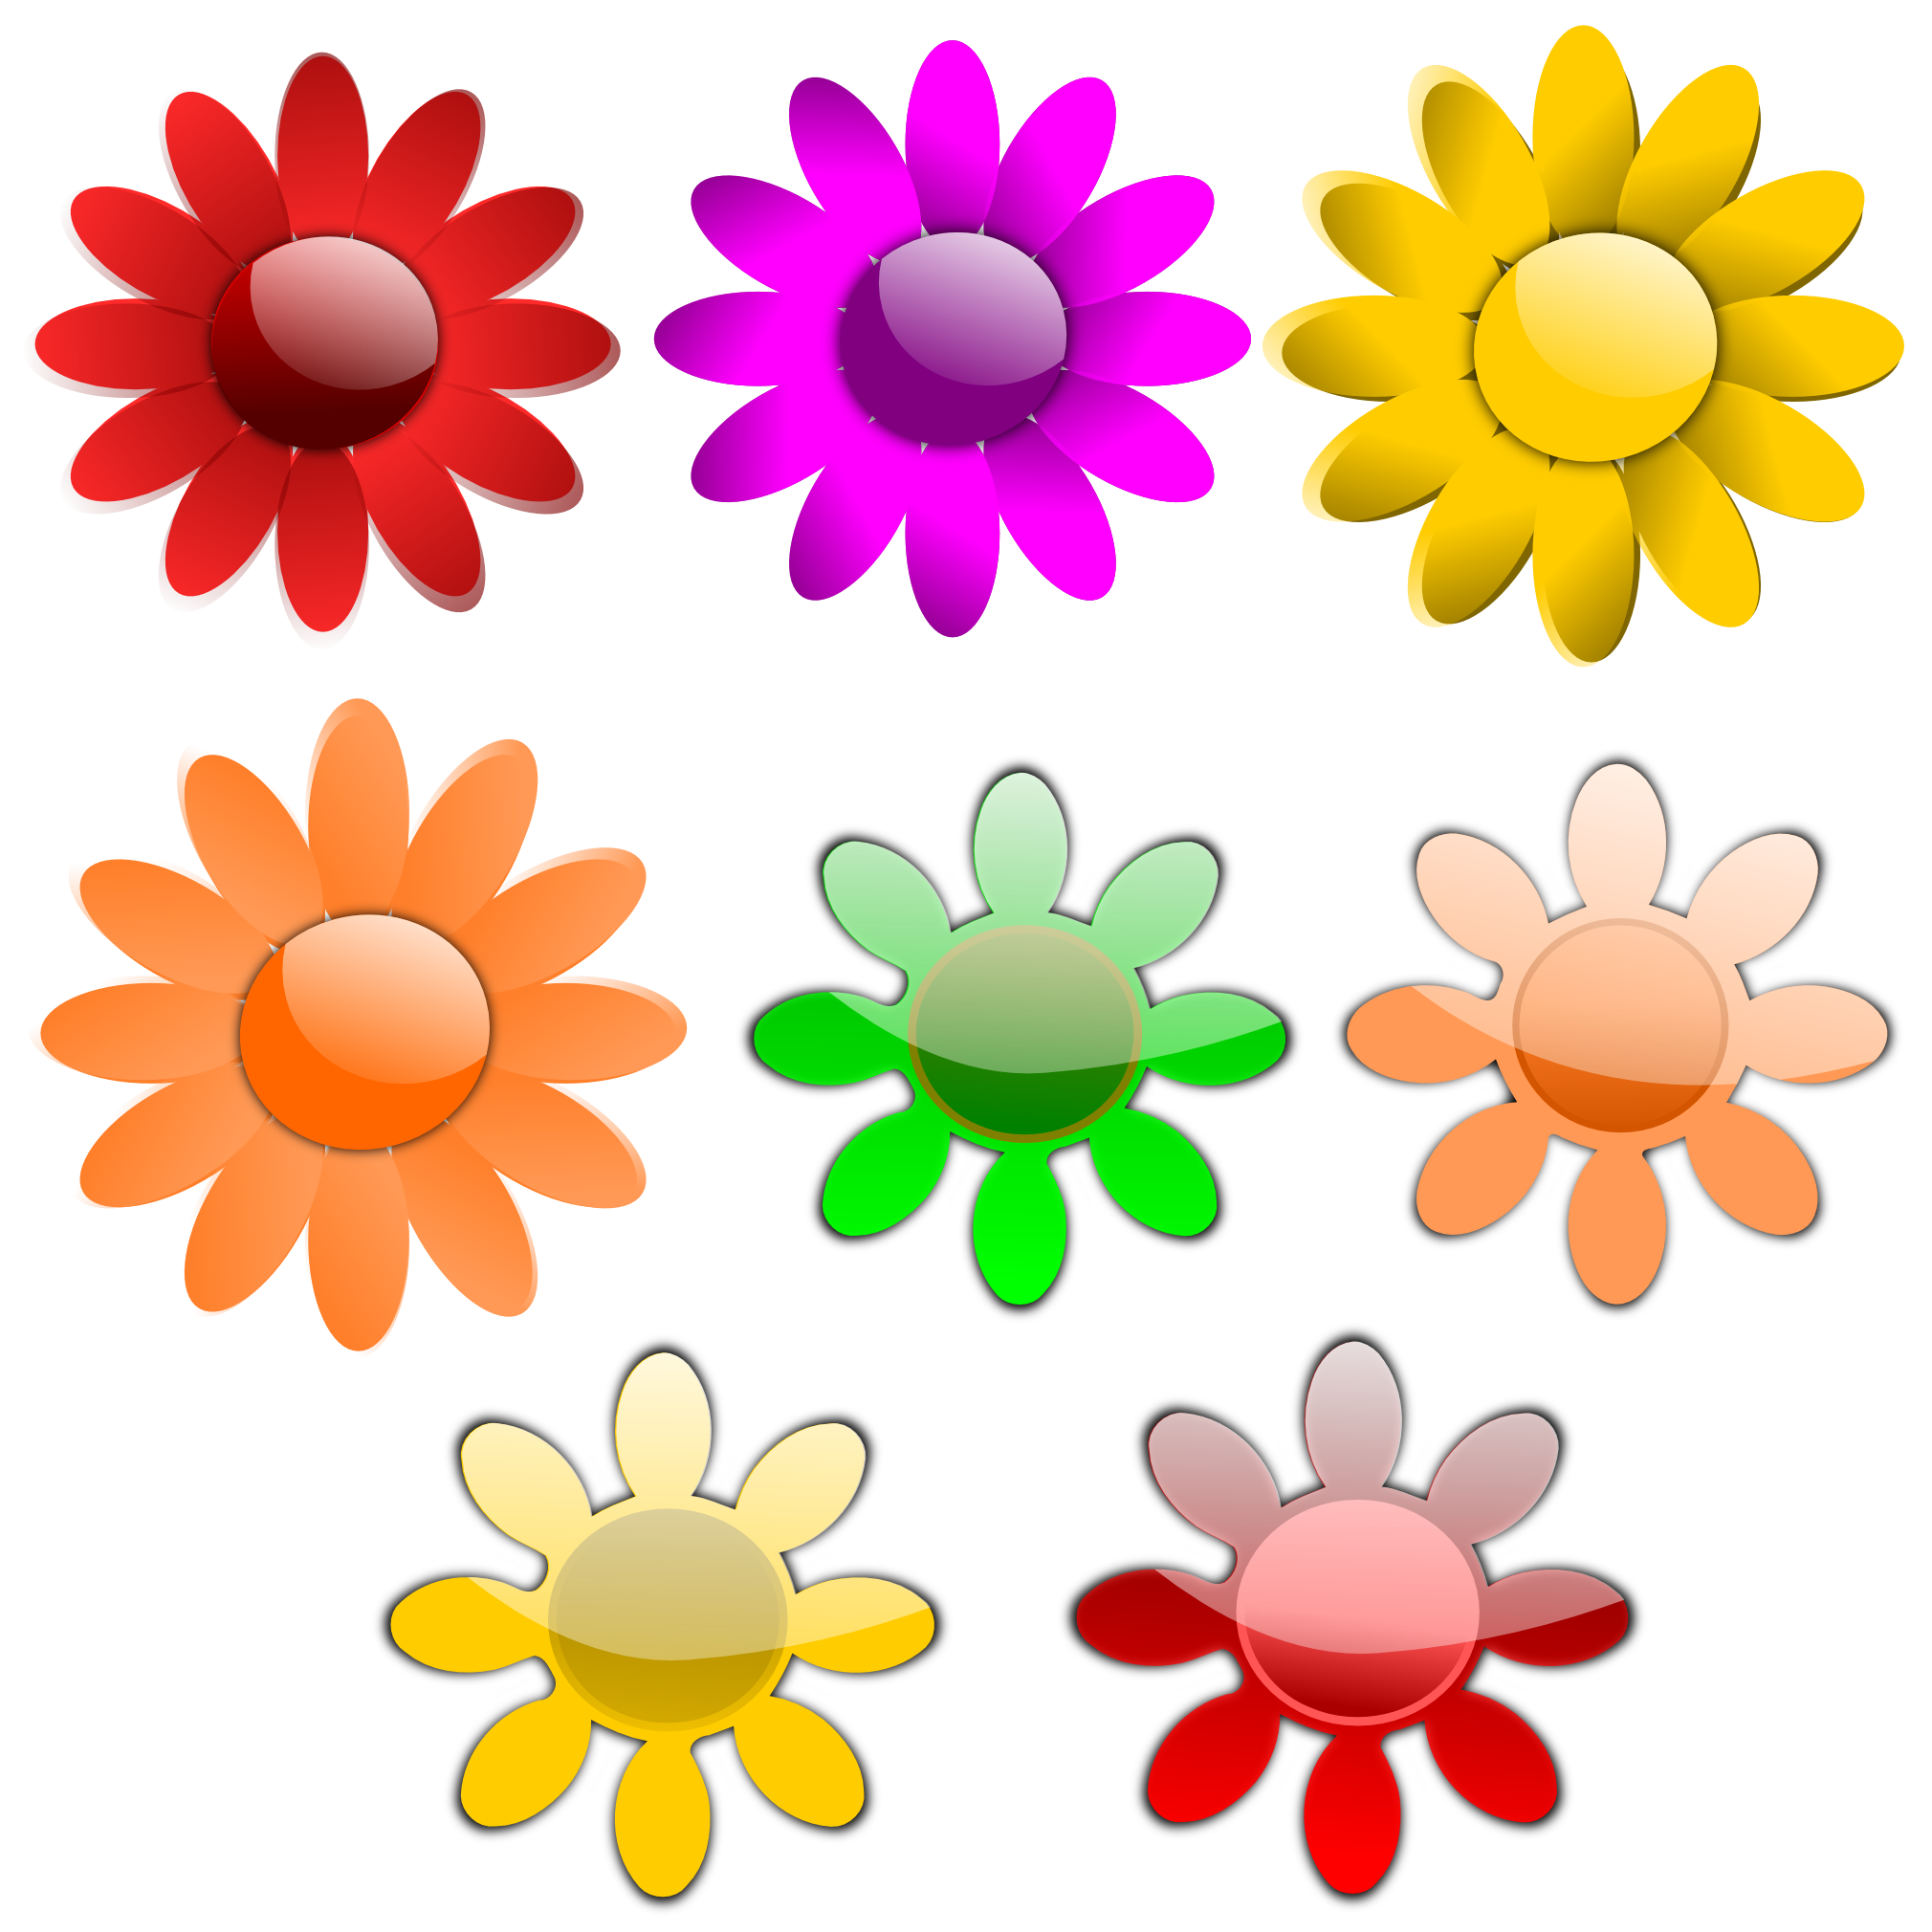 clipart autovetture - photo #21